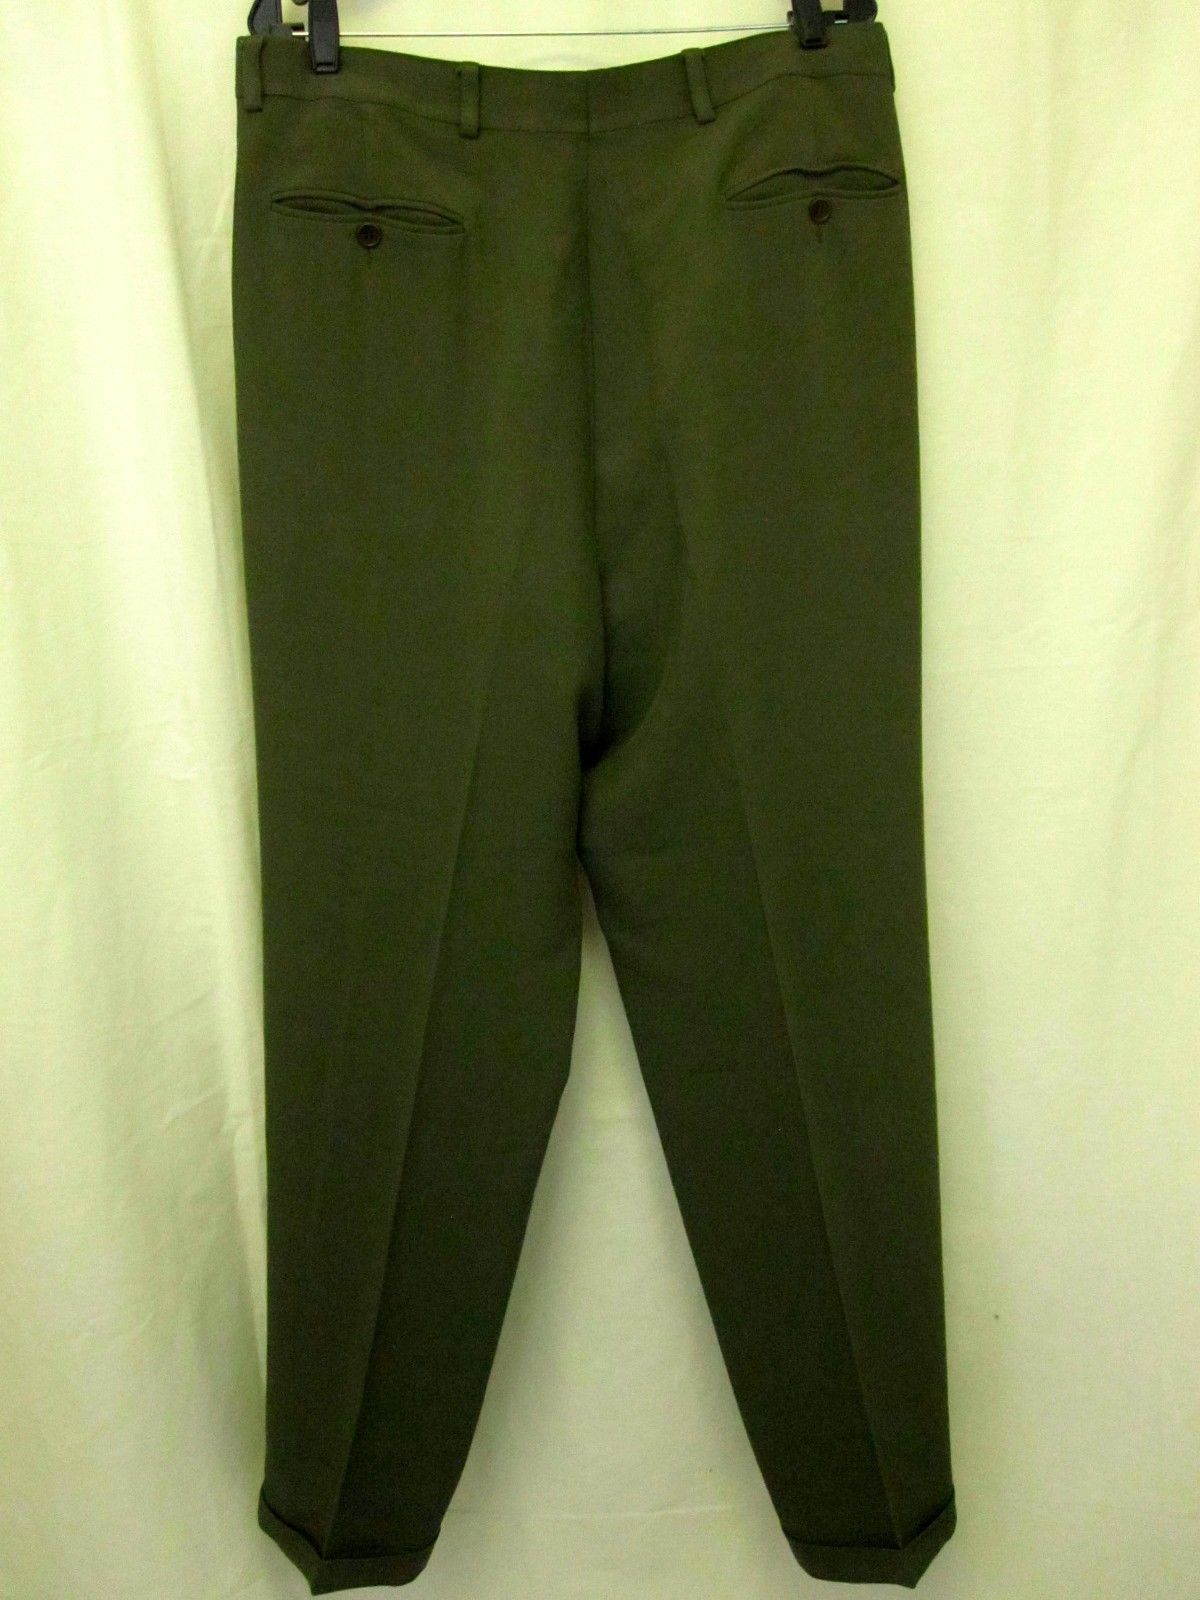 Giorgio Armani Pants 34 X 31 Green Wool Blend 2 Pleat Trousers Mens